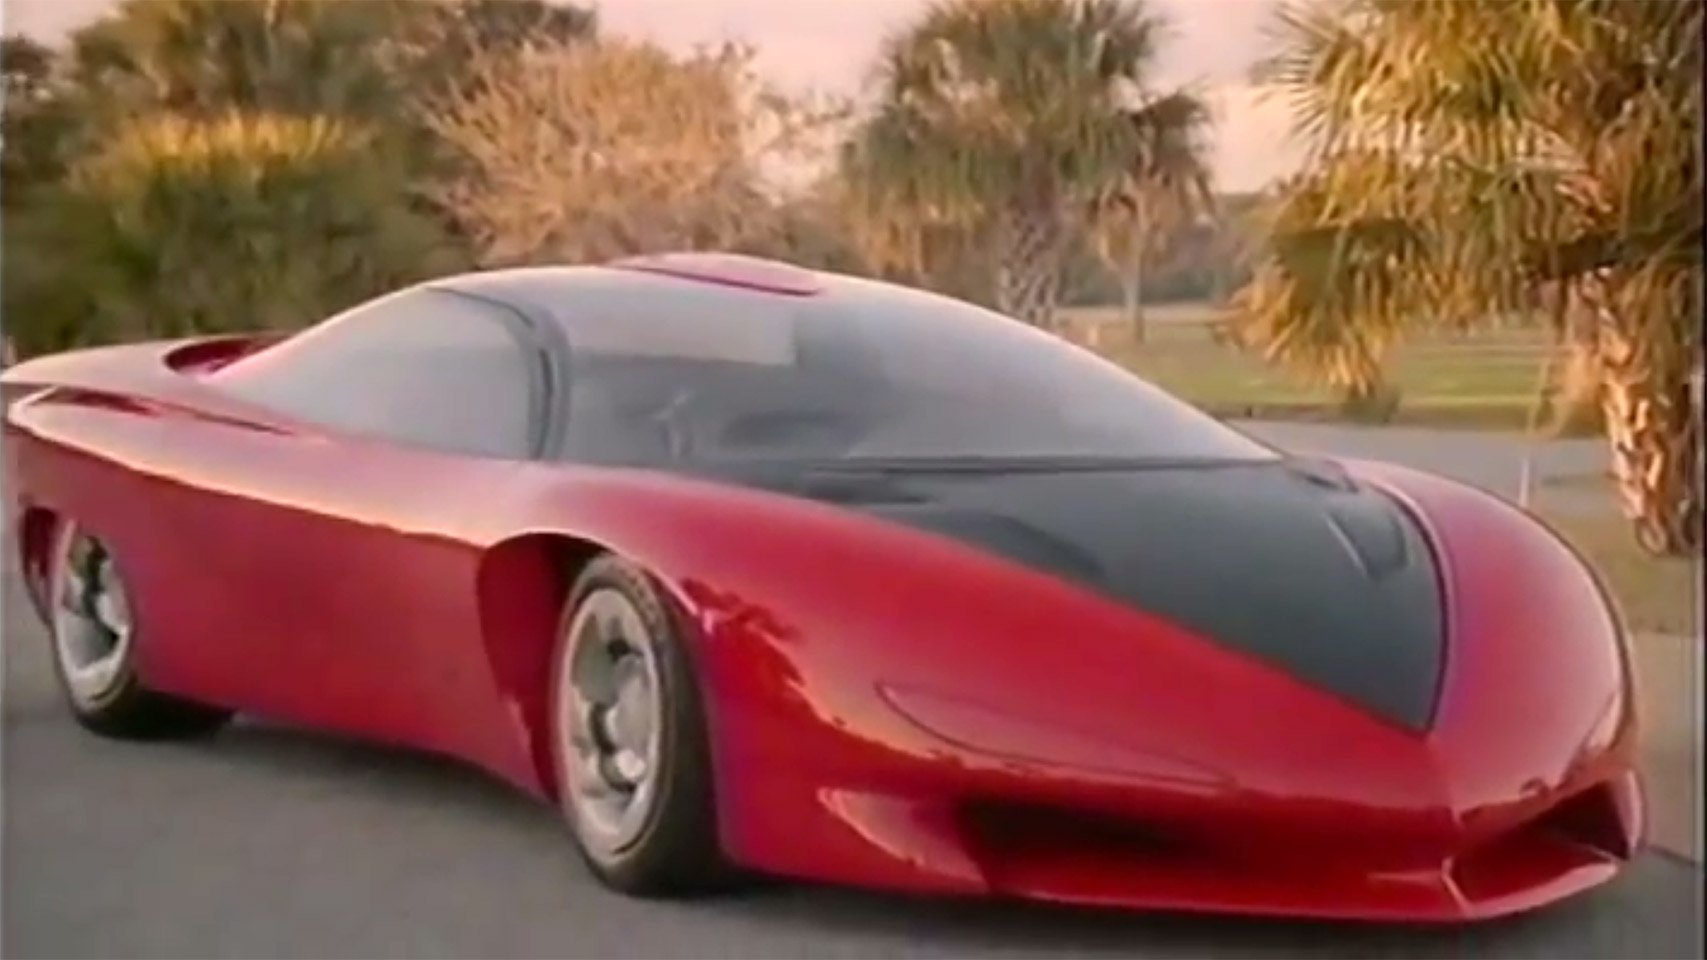 1988 Pontiac Banshee Concept likewise Austin Healey Sebring Sprite also Opinion Why The New Gp Is Minis First Real Jcw Product also Sold Sold Sold 1939 Oldsmobile 70 Series Club Coupe Custom moreover Power Your Bmw Using A Solar Powered Garage. on electric cars 2013 in us